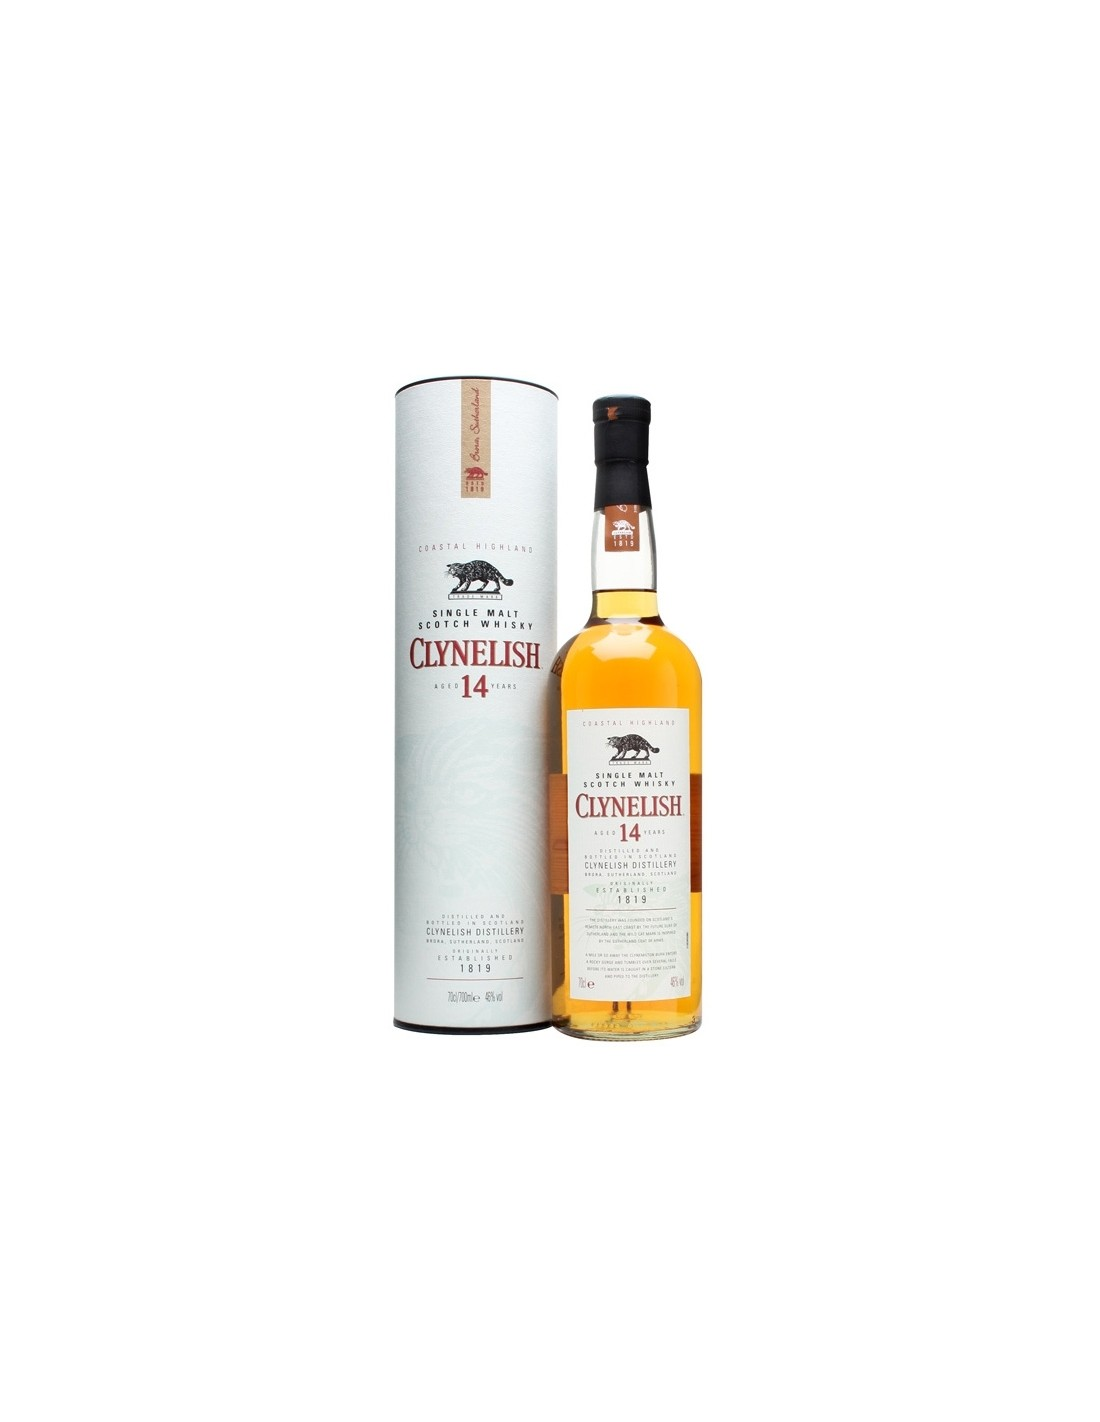 Whisky Clynelish, 46% alc., 0.7L, Scotia